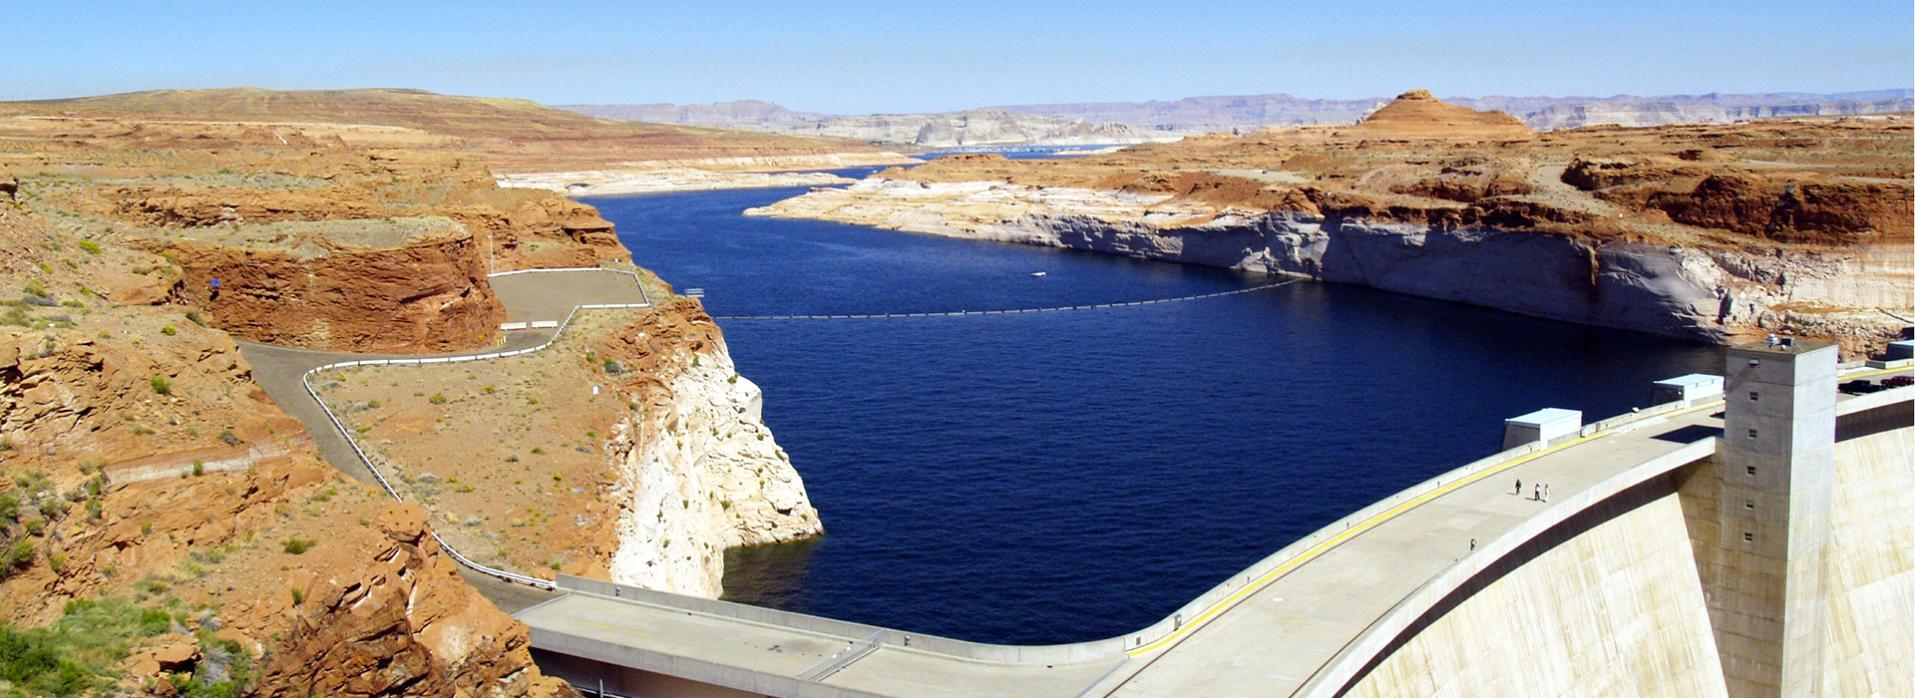 Lake Powell & Glen Canyon Dam in Arizona